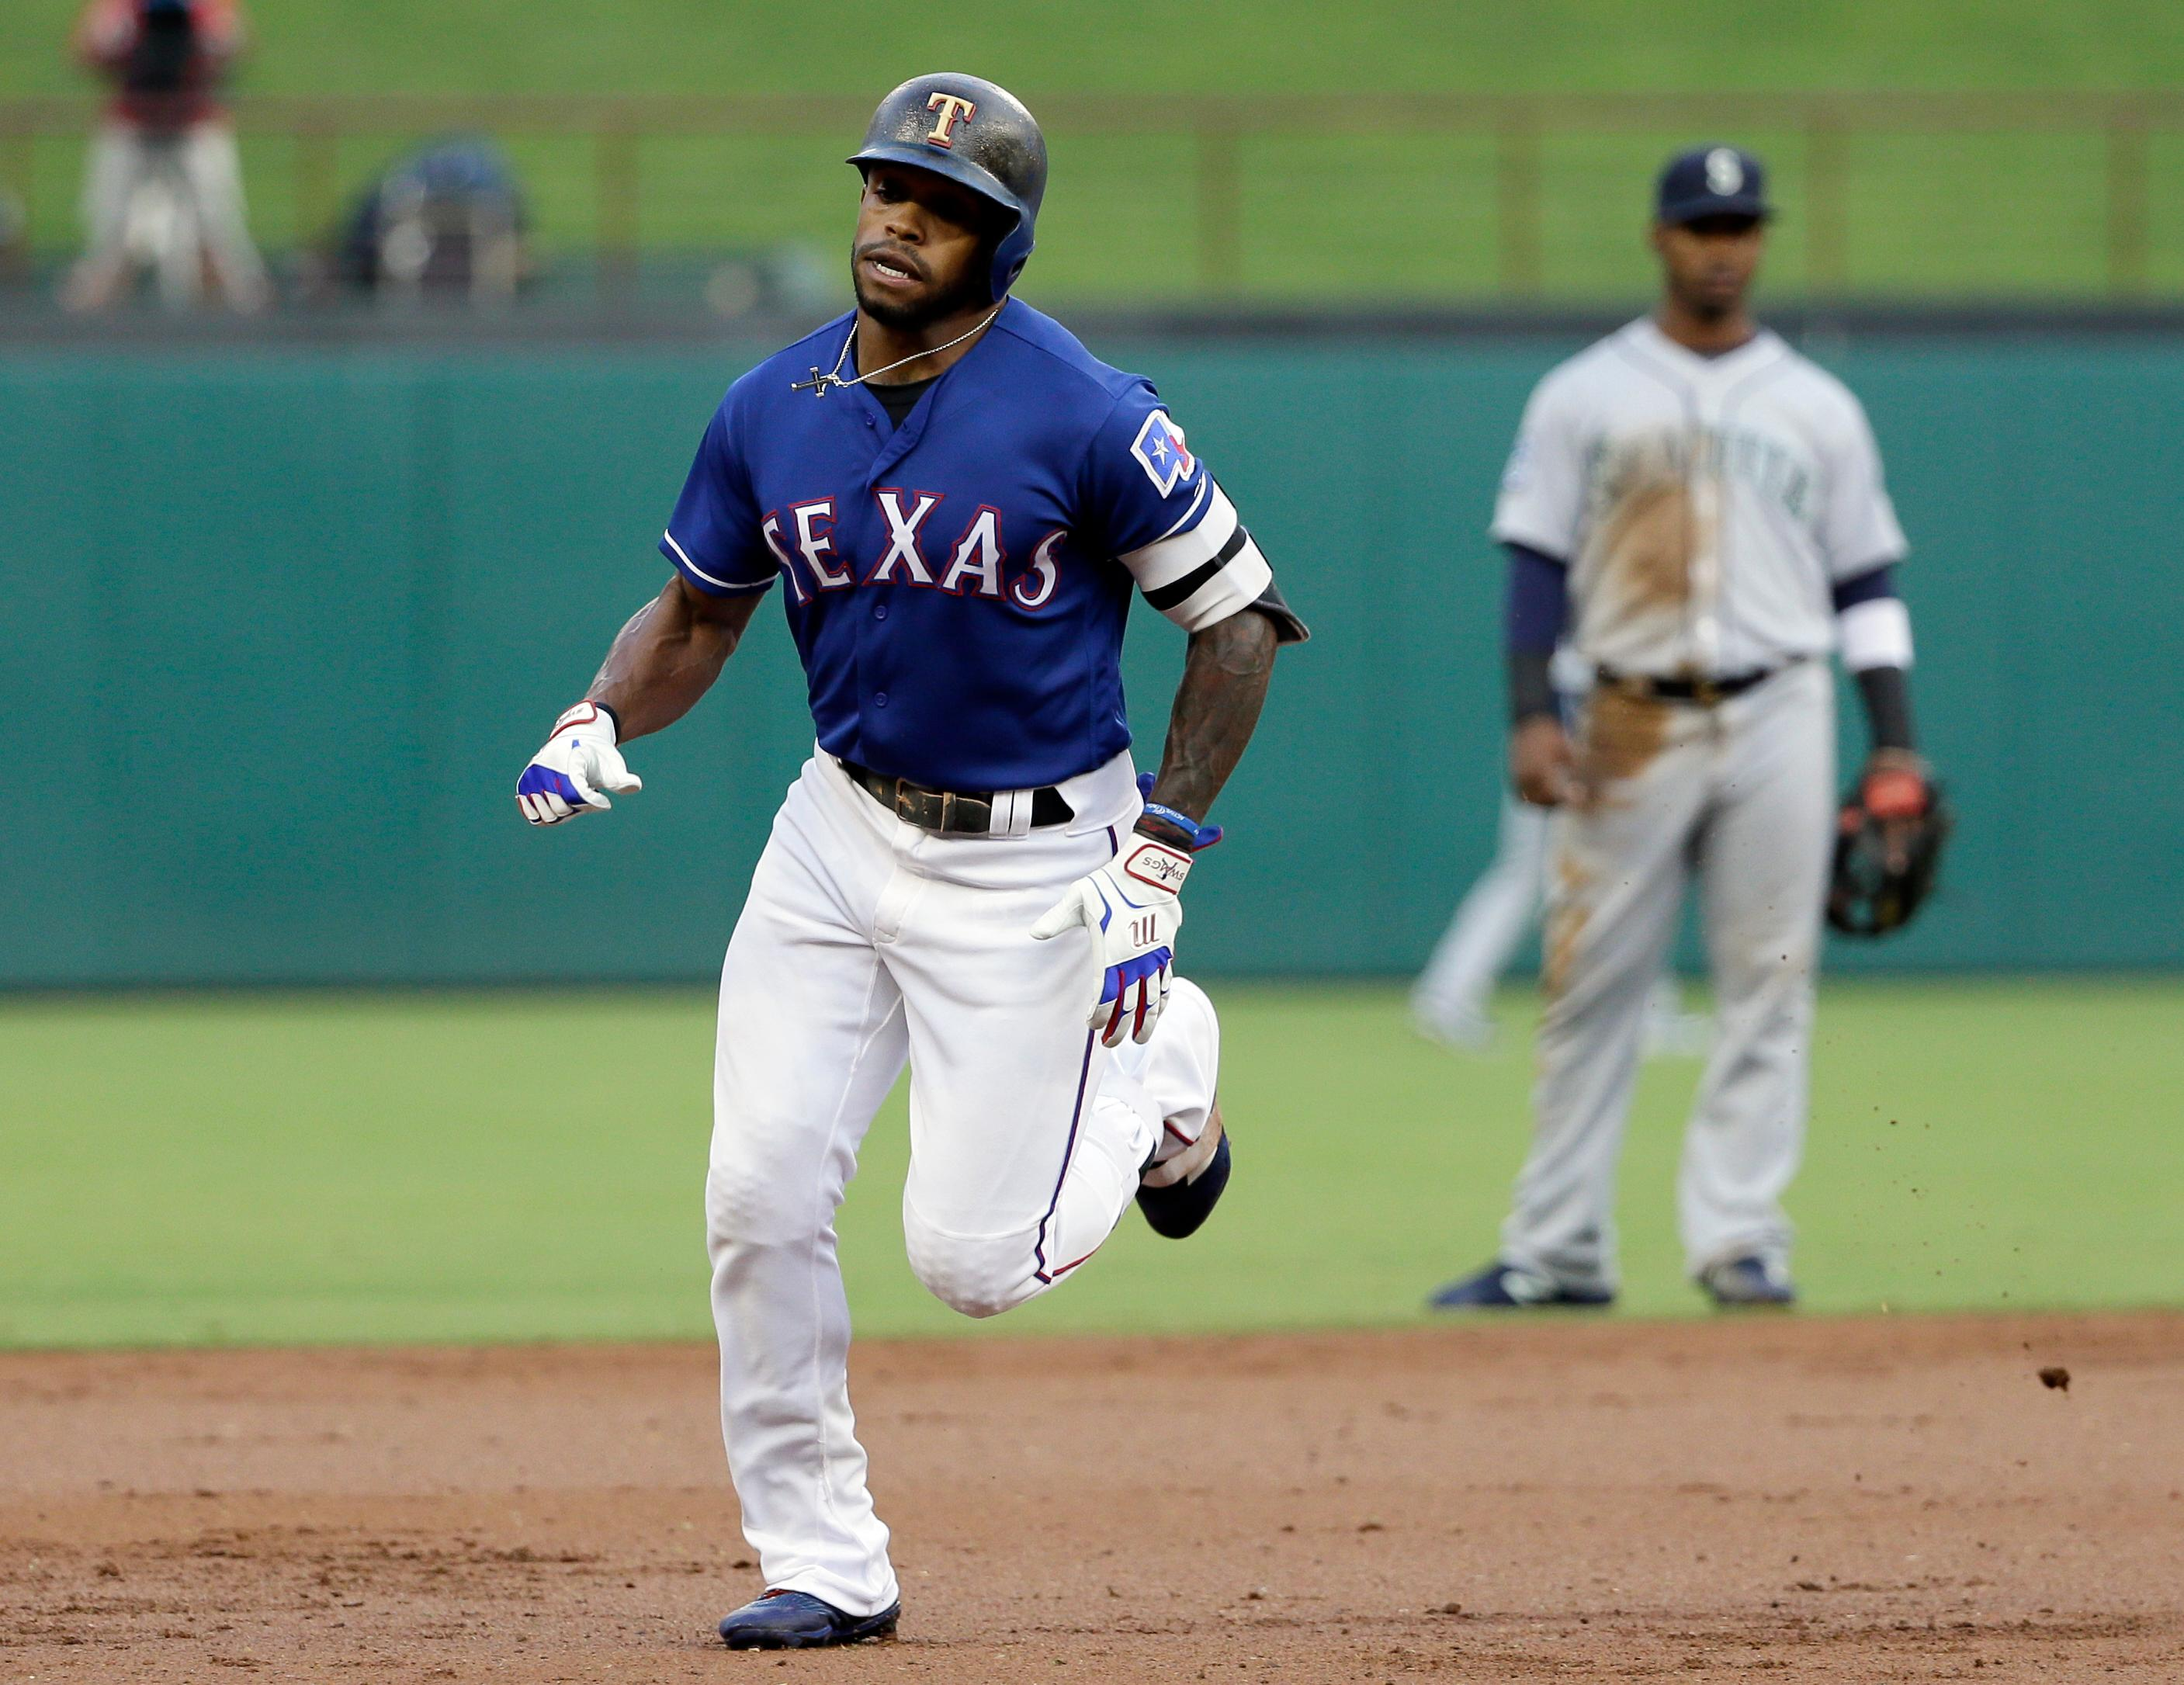 Texas Rangers' Delino DeShields rounds the bases after hitting a leadoff solo home run, as Seattle Mariners shortstop Jean Segura, rear, watches during the first inning of a baseball game, Wednesday, Aug. 2, 2017, in Arlington, Texas. (AP Photo/Tony Gutierrez)